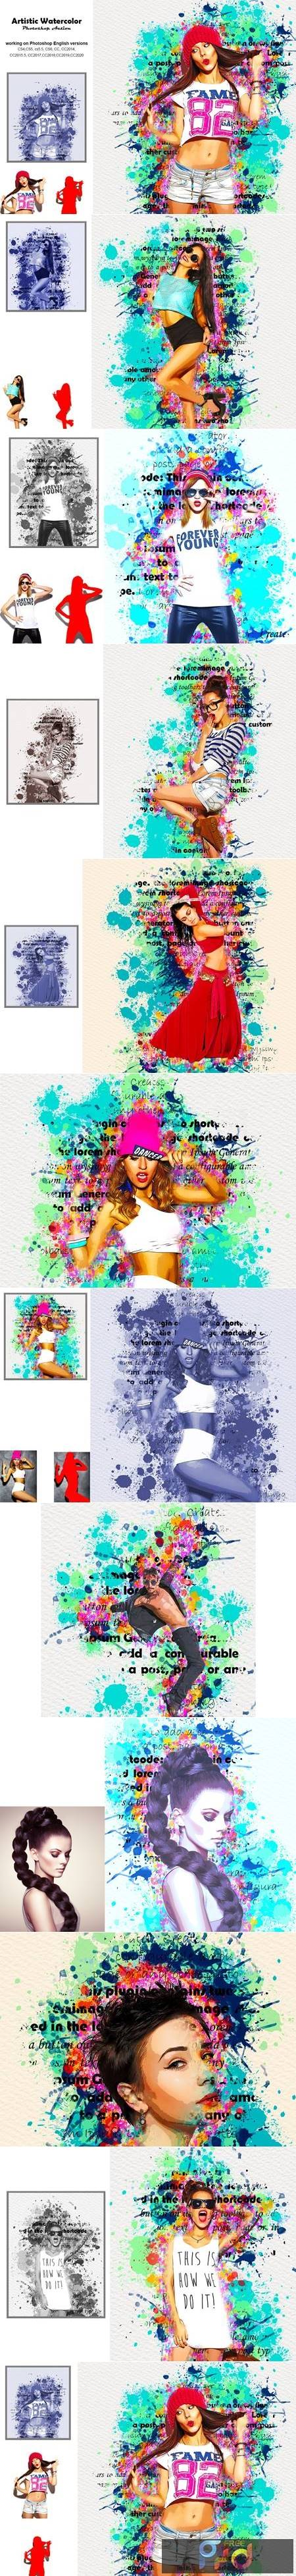 Artistic Watercolor Photoshop Action 5236288 1